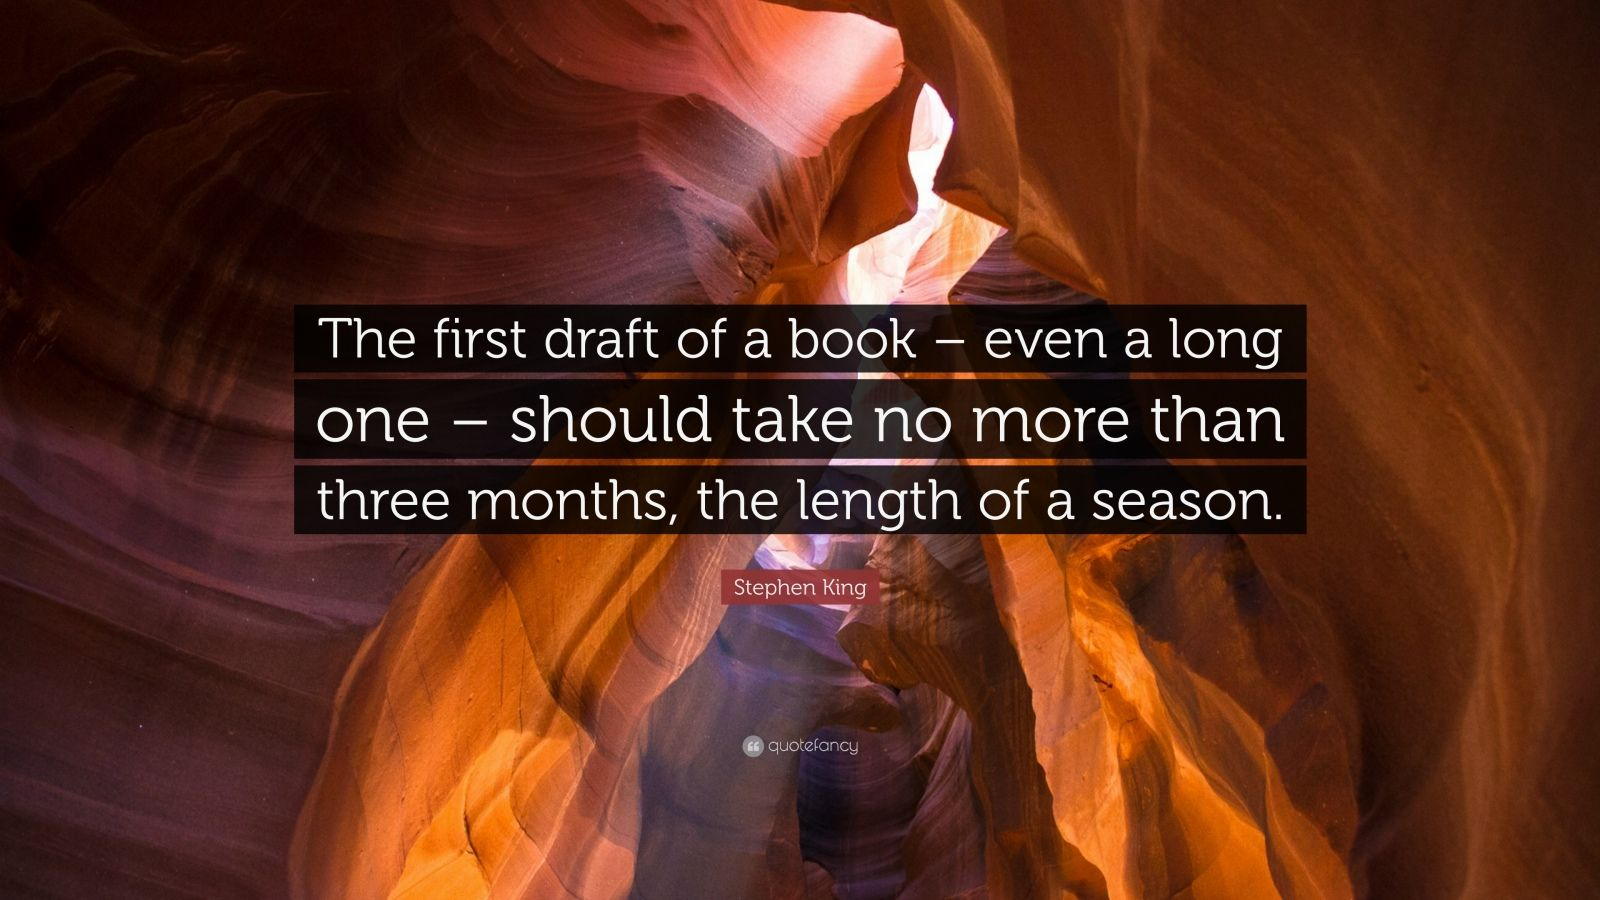 """Stephen King Quote: """"The first draft of a book – even a long one – should take no more than three months, the length of a season."""""""